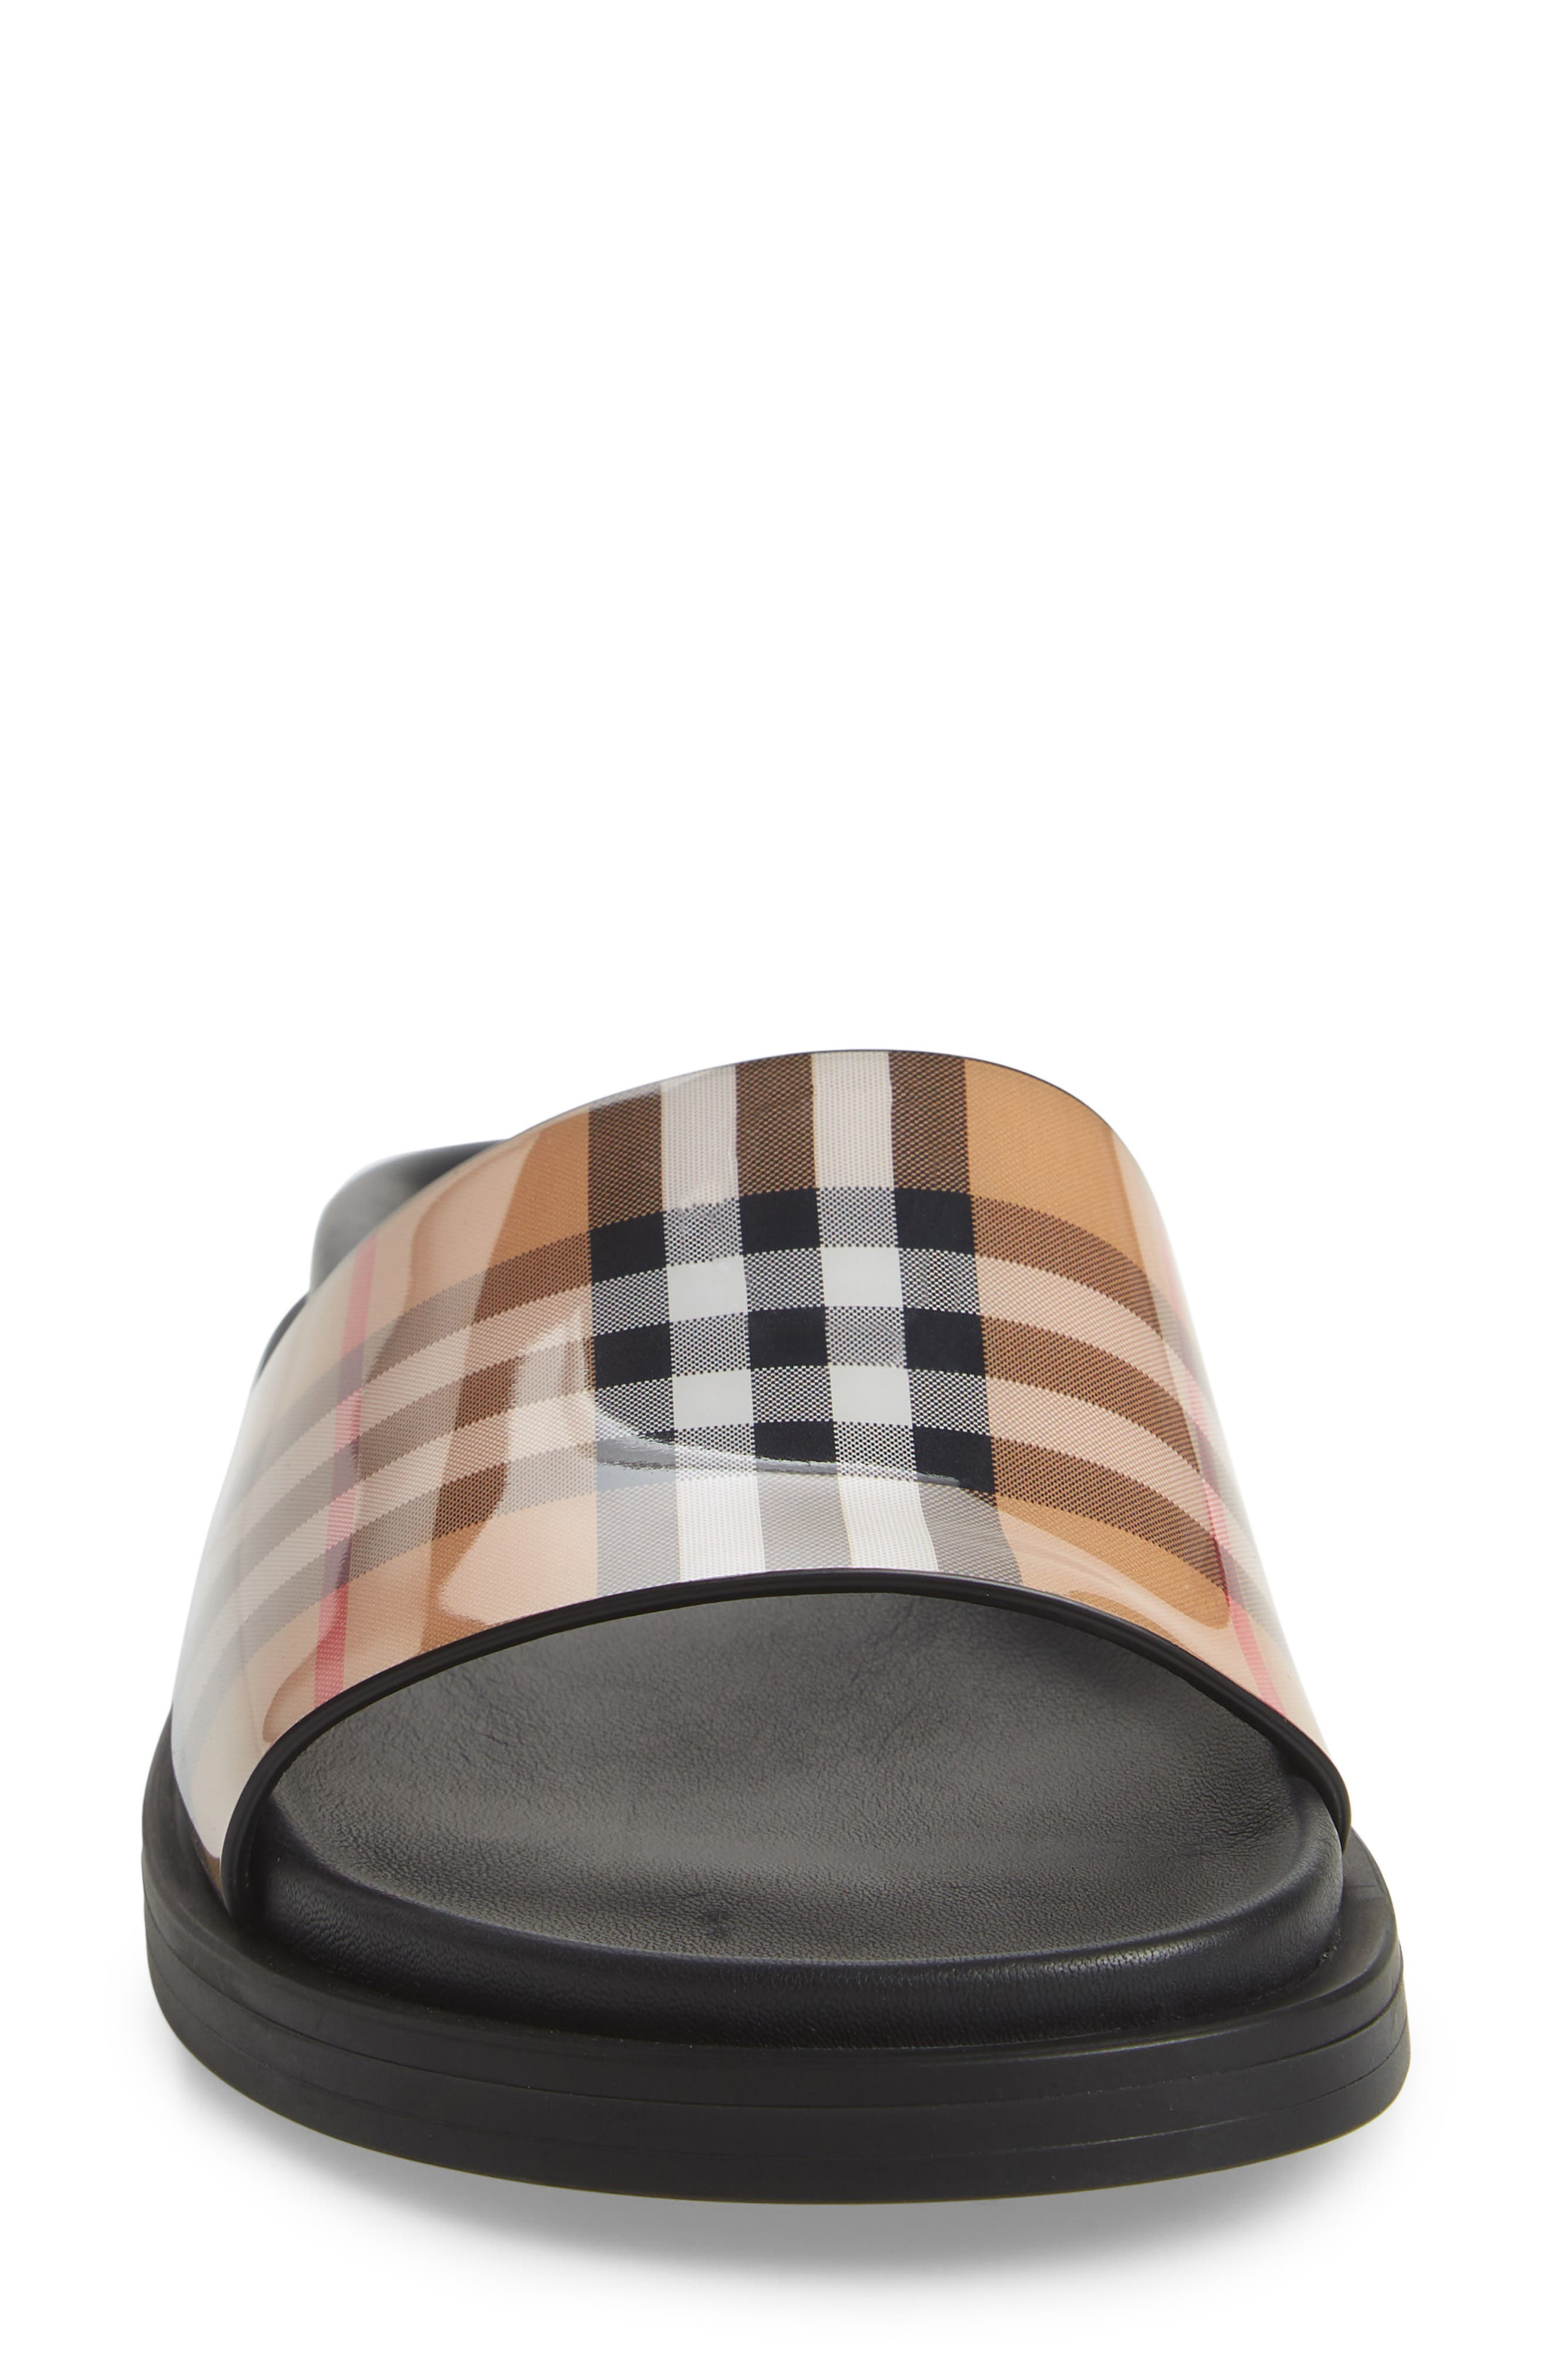 BURBERRY,                             Vintage Check Slide Sandal,                             Alternate thumbnail 5, color,                             250